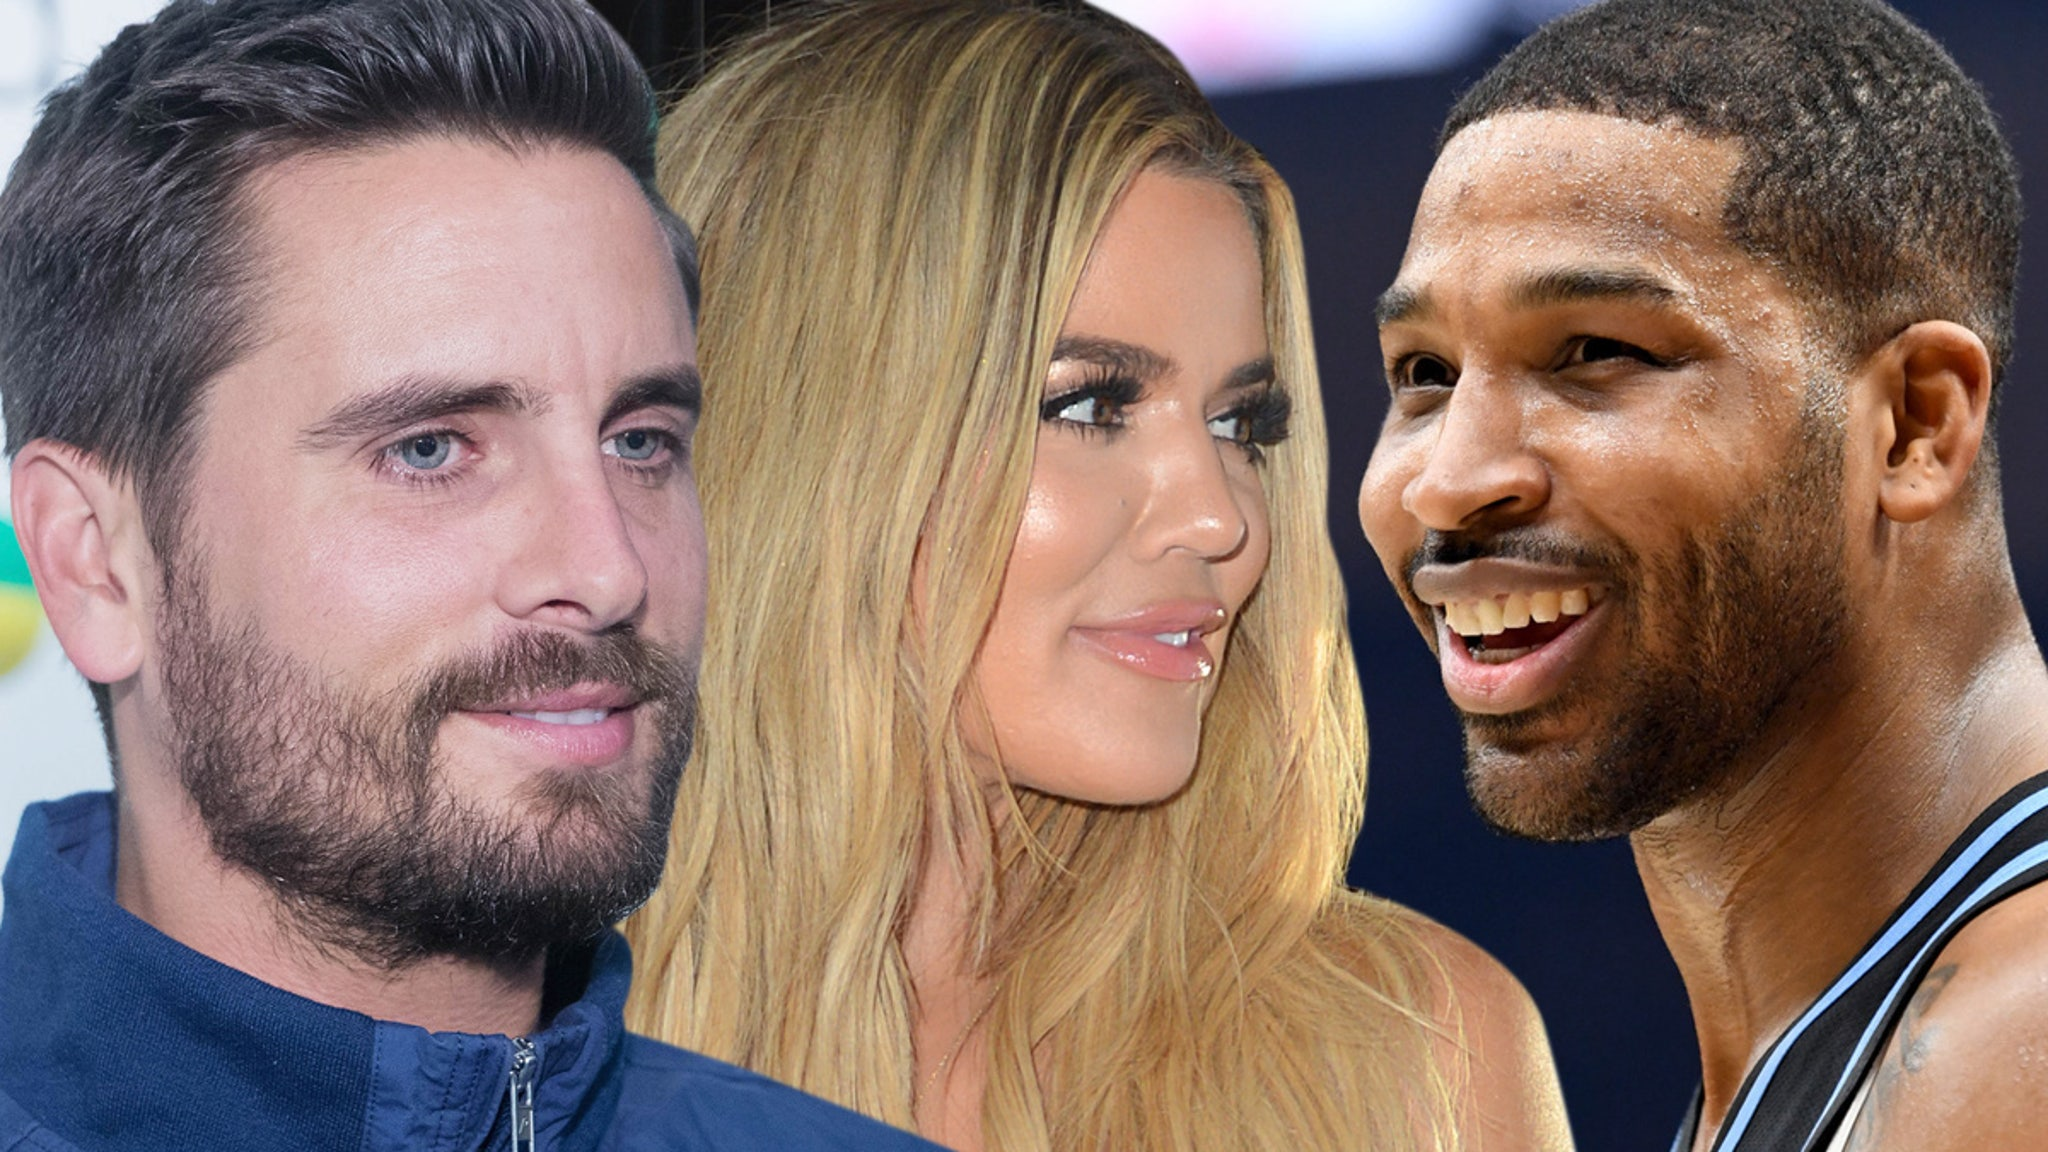 Scott Disick Spills the Tea on Khloe & Tristan ... They're Back Together!!!